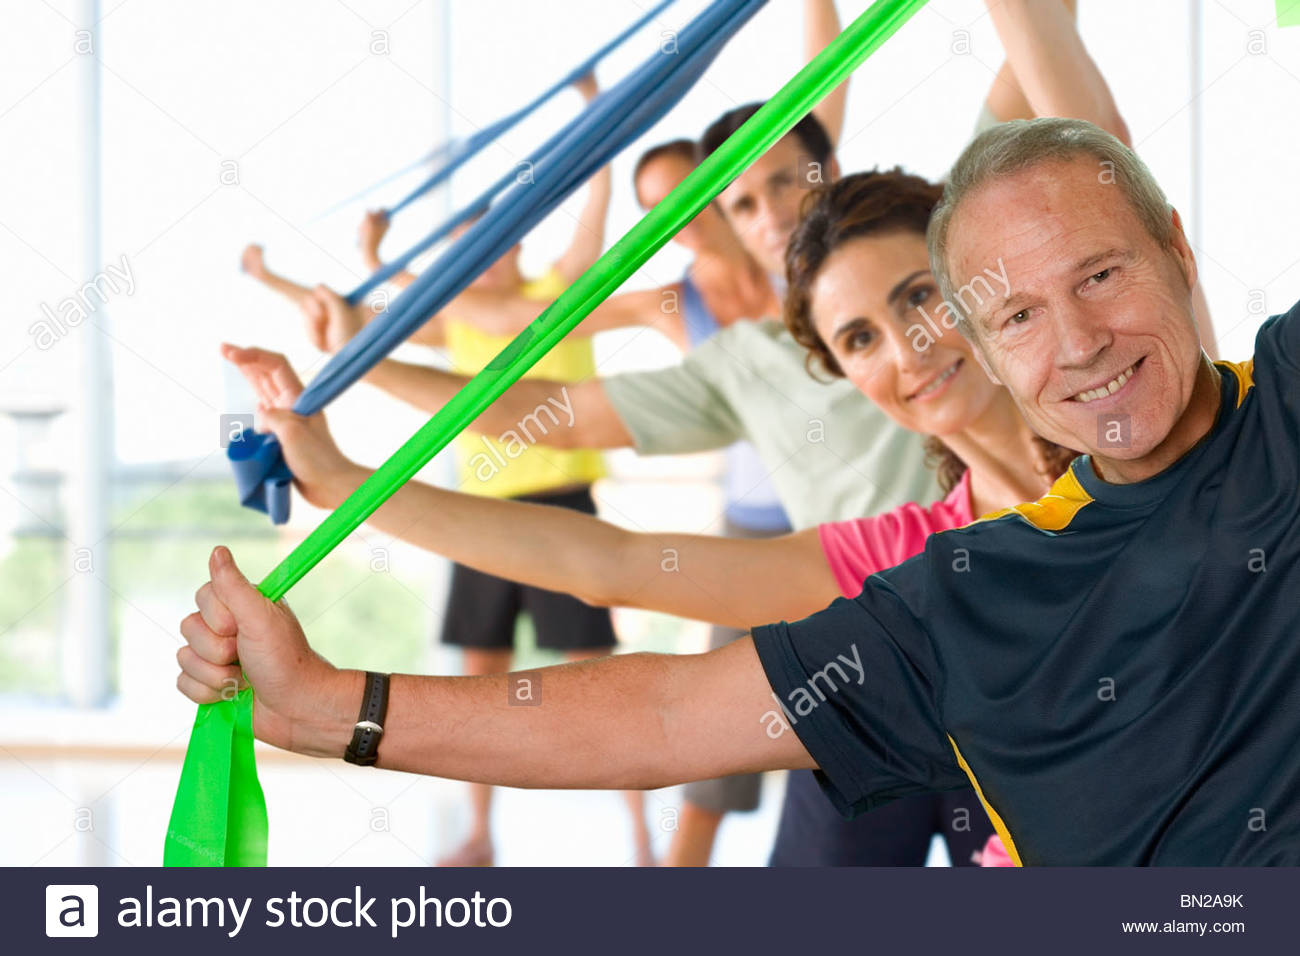 Men and women holding resistance bands overhead in exercise glass - Stock Image